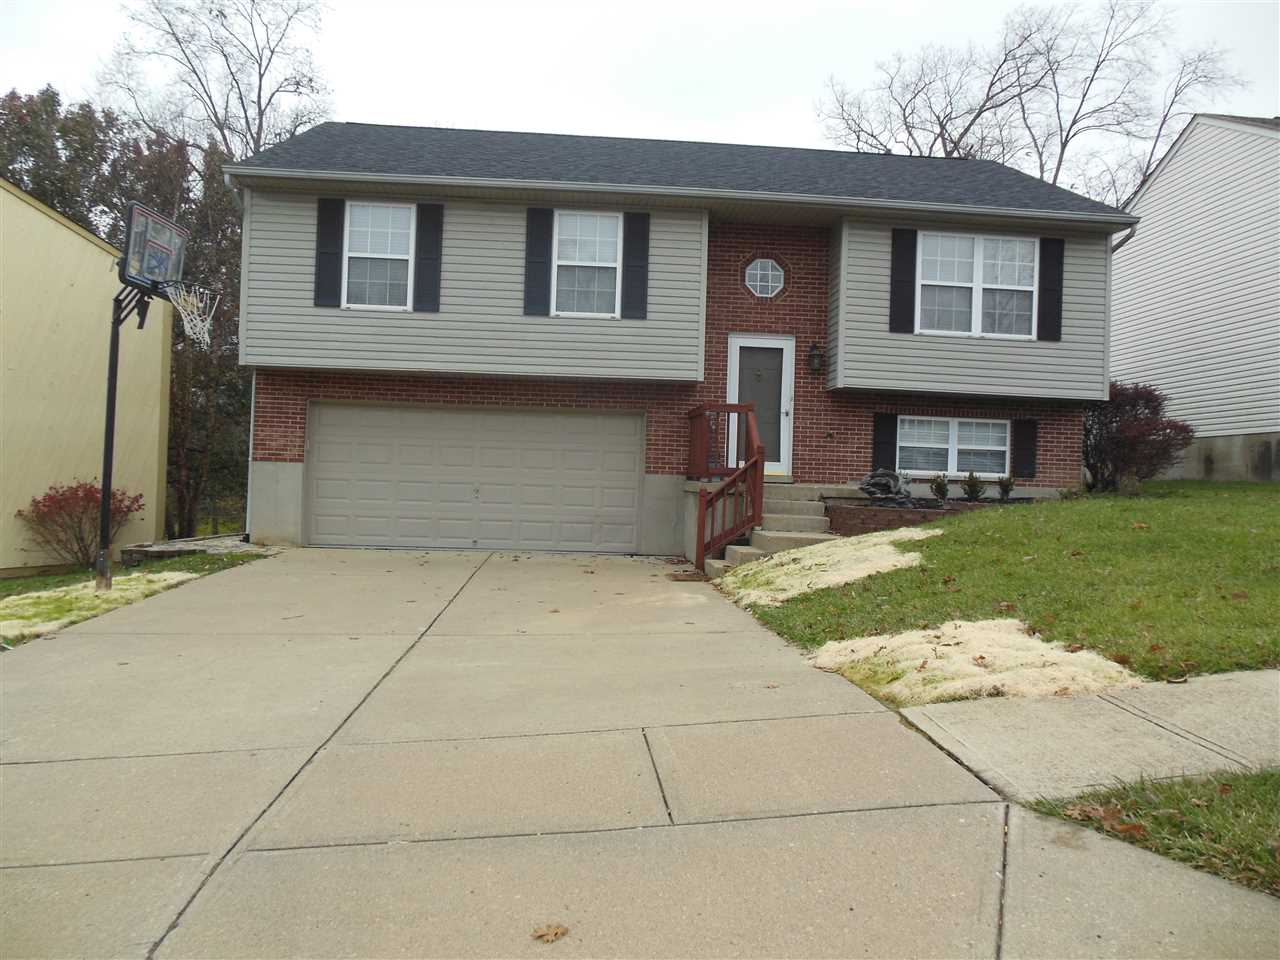 Photo 1 for 1459 Melinda Ln Elsmere, KY 41018